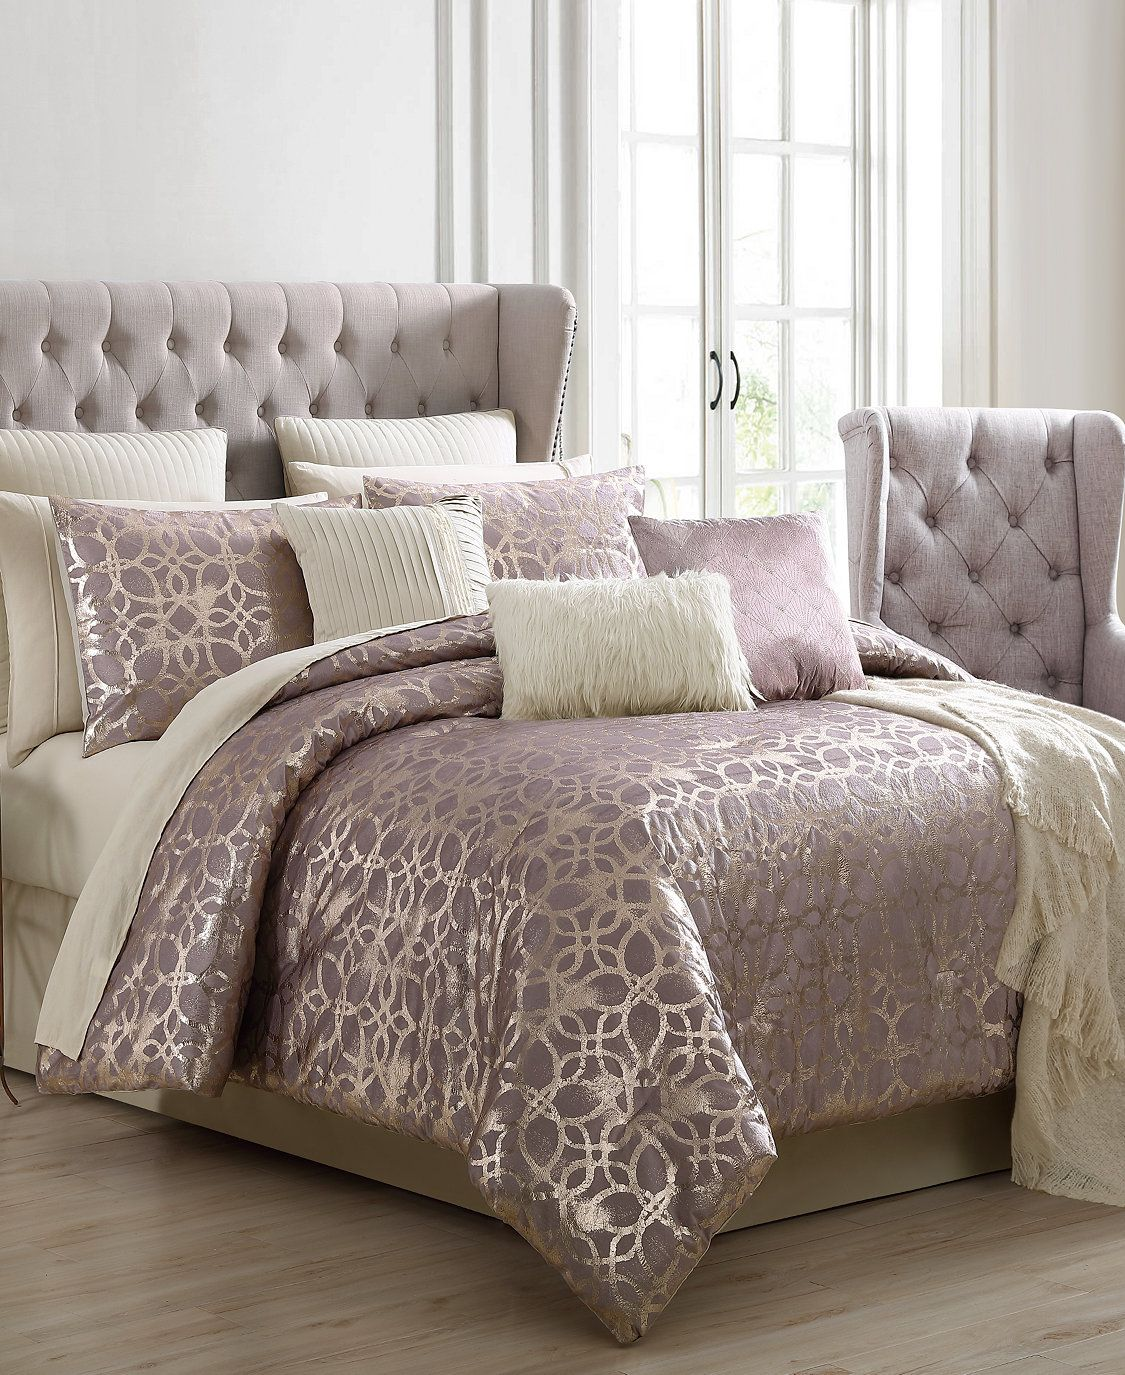 Hallmart Collectibles Sadie 14 Pc King Comforter Set Reviews Comforter Sets Bed Bath Macy S Queen Comforter Sets Comforter Sets King Comforter Sets What is the size of a king size comforter